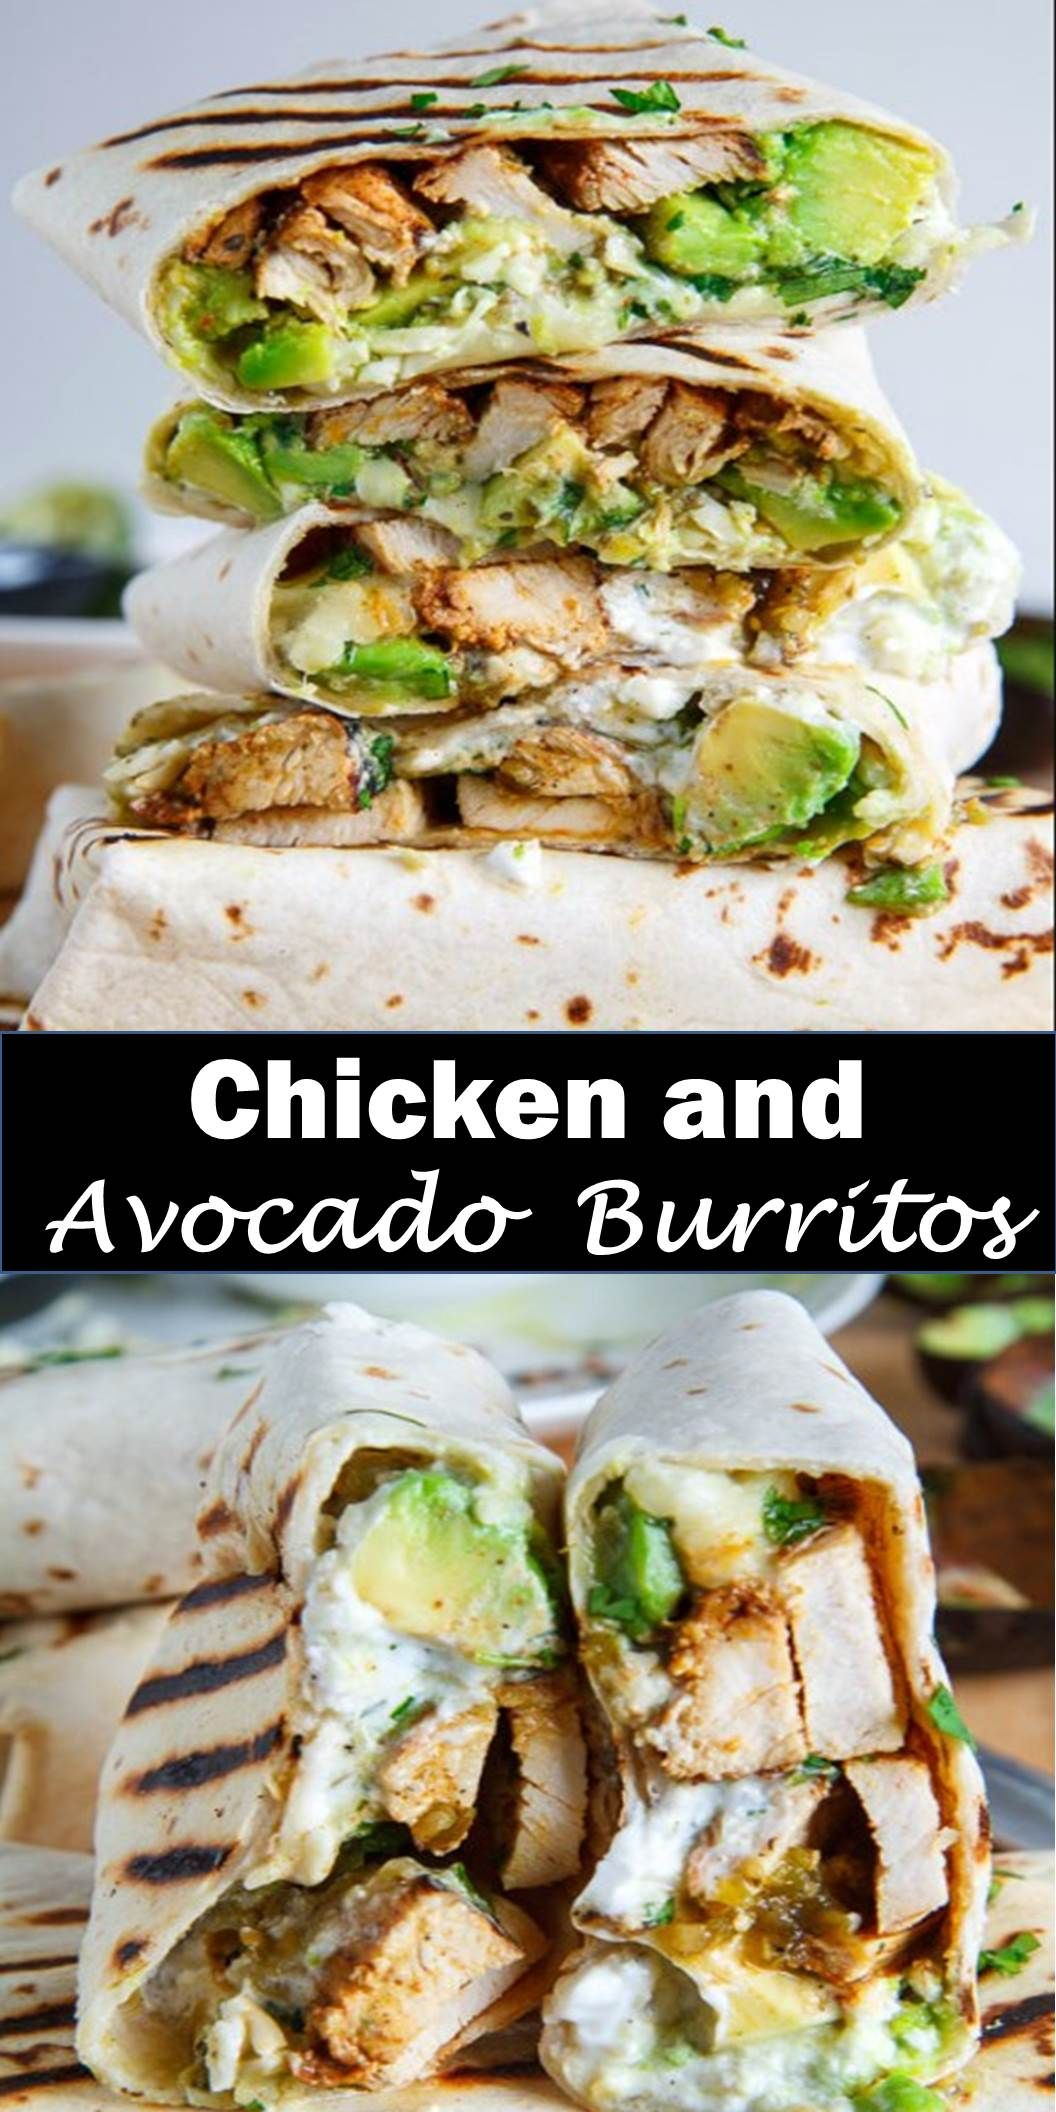 #Best #Food #Chicken #and #Avocado #Burritos Delicious and healthy family choice special food and drink Chicken and Avocado Burritos Burritos stuffed with juicy chicken, cool and creamy avocado, oozy gooey melted cheese, spicy salsa verde and sour cream! Today I have some tasty chicken and avocado burritos for you! They are so easy to make, you simply wrap the chicken, avocado, cheese, salsa verde, sour cream and cilantro up in a tortilla, grill it and enjoy! #Best #Vegan #Recipes! #BestVega #healthyavocadorecipes